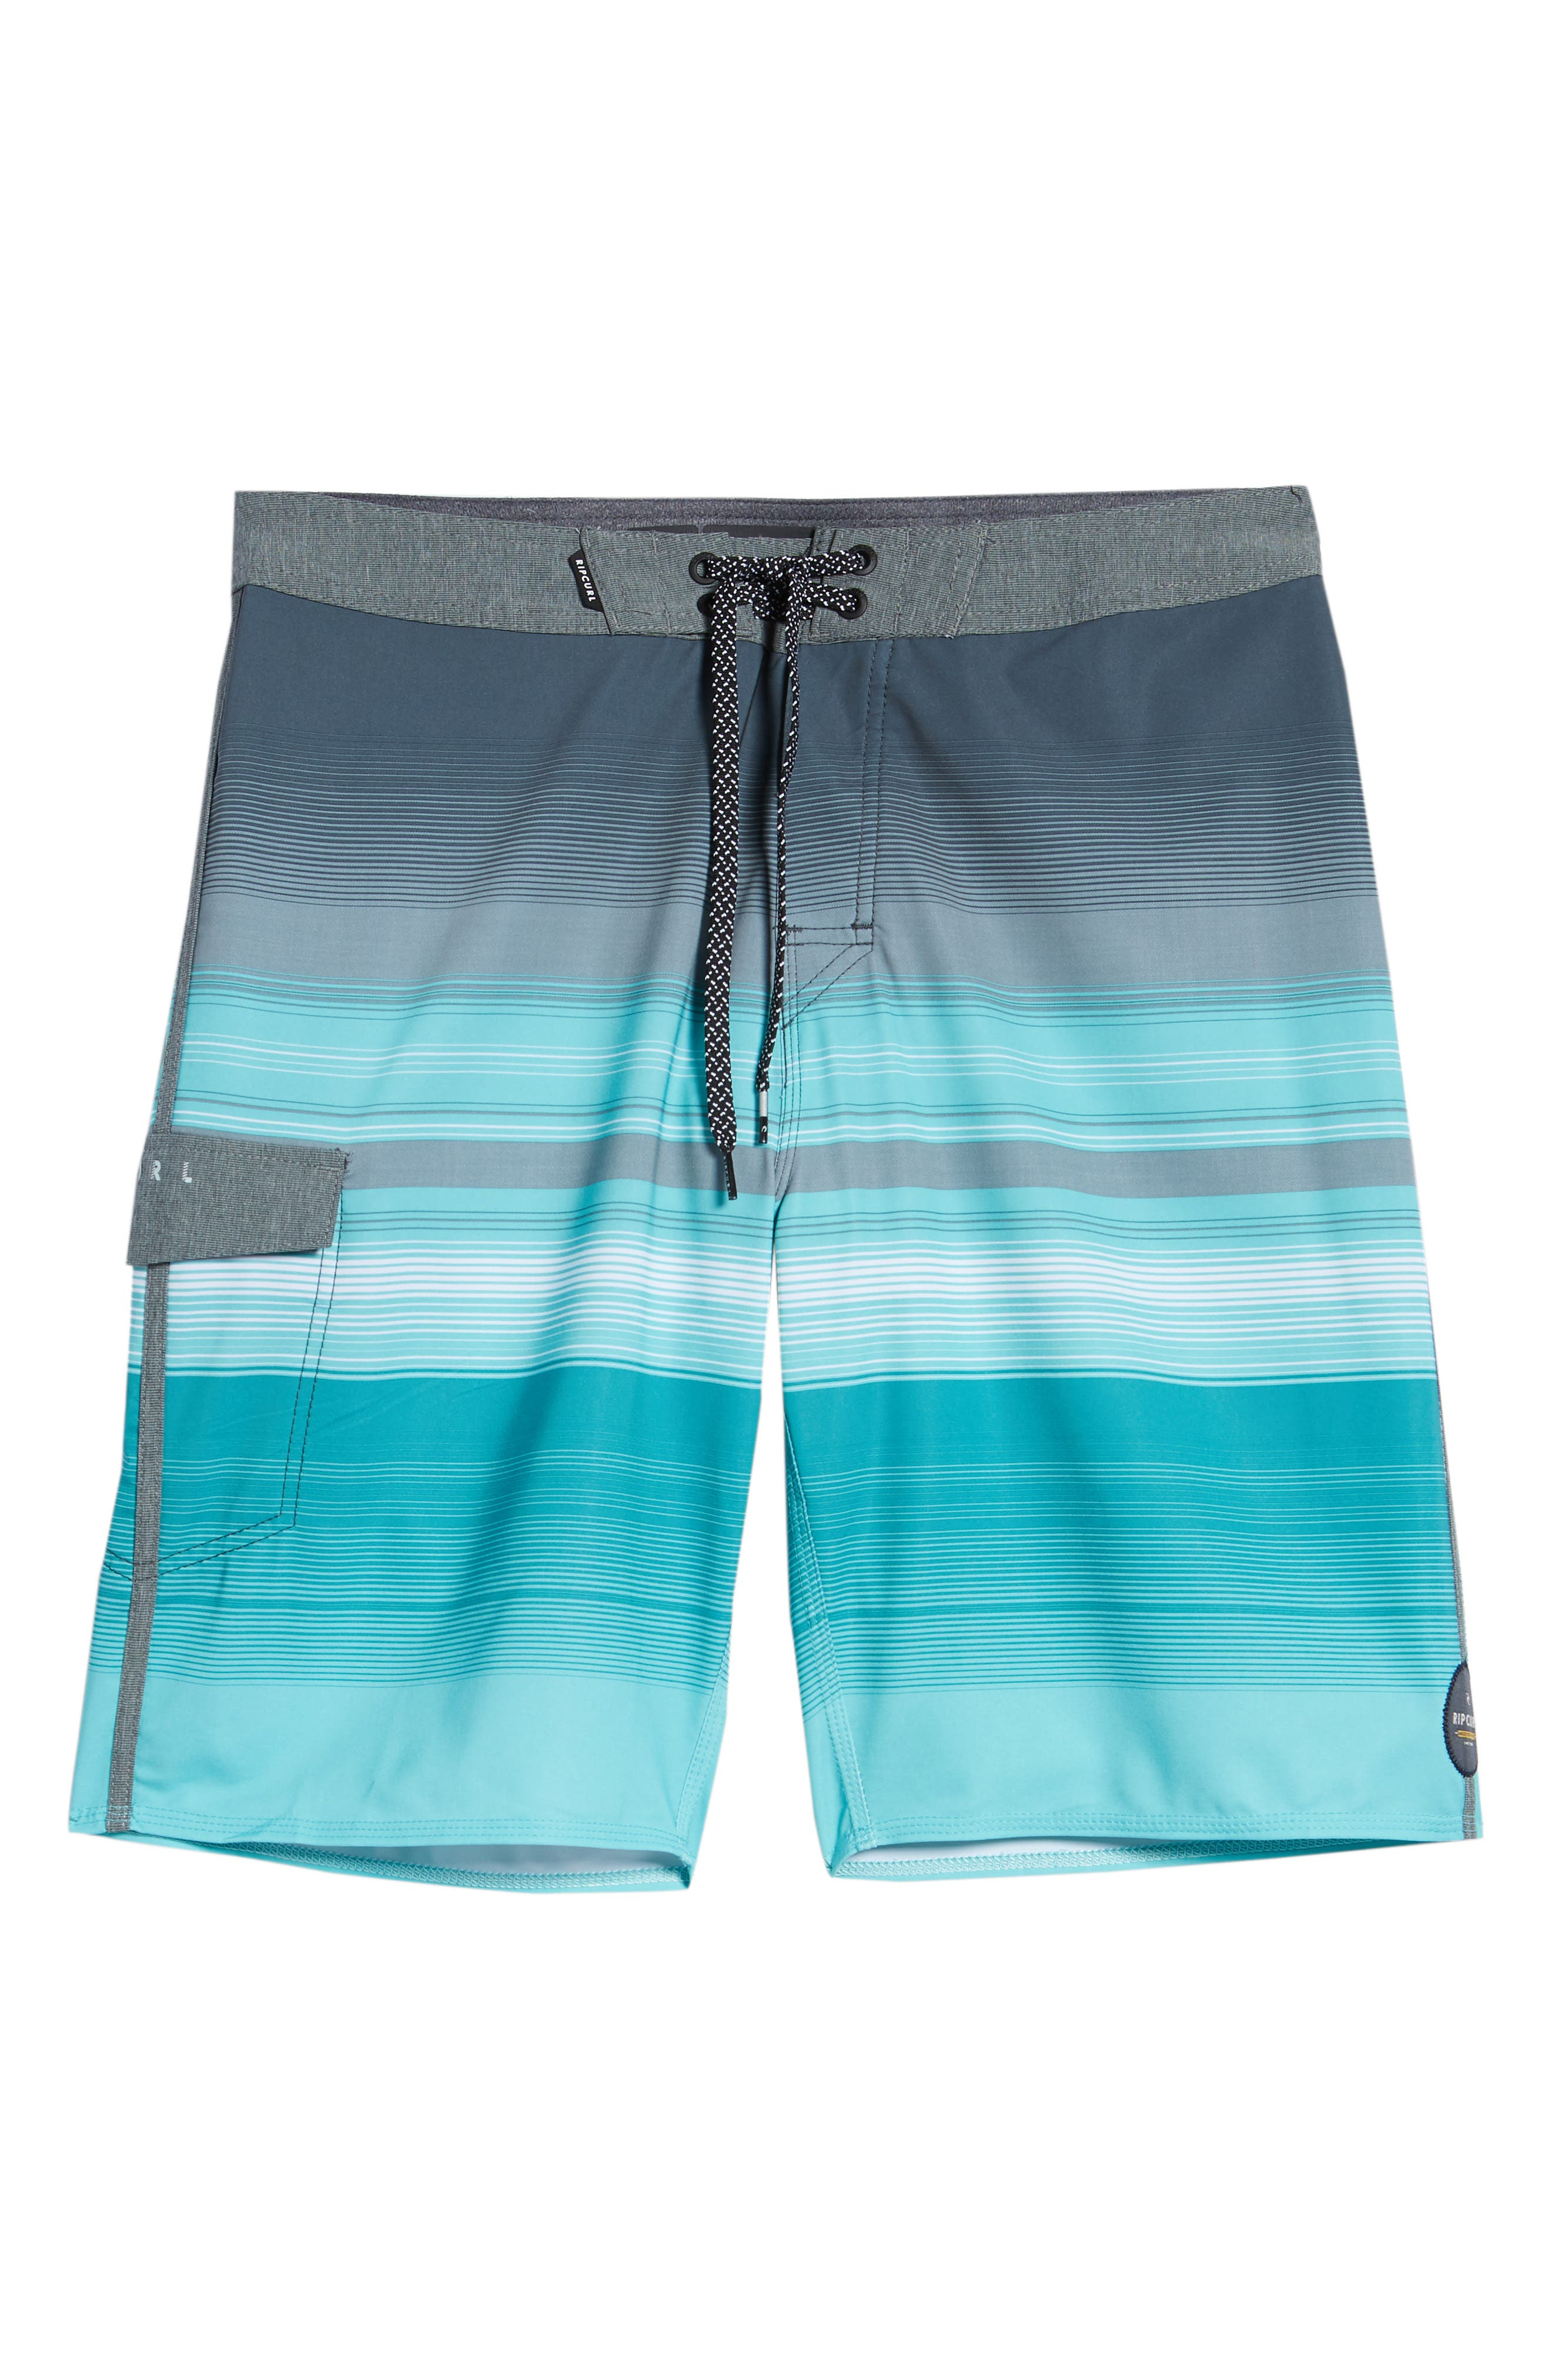 Mirage Accelerate Board Shorts,                             Alternate thumbnail 6, color,                             Teal